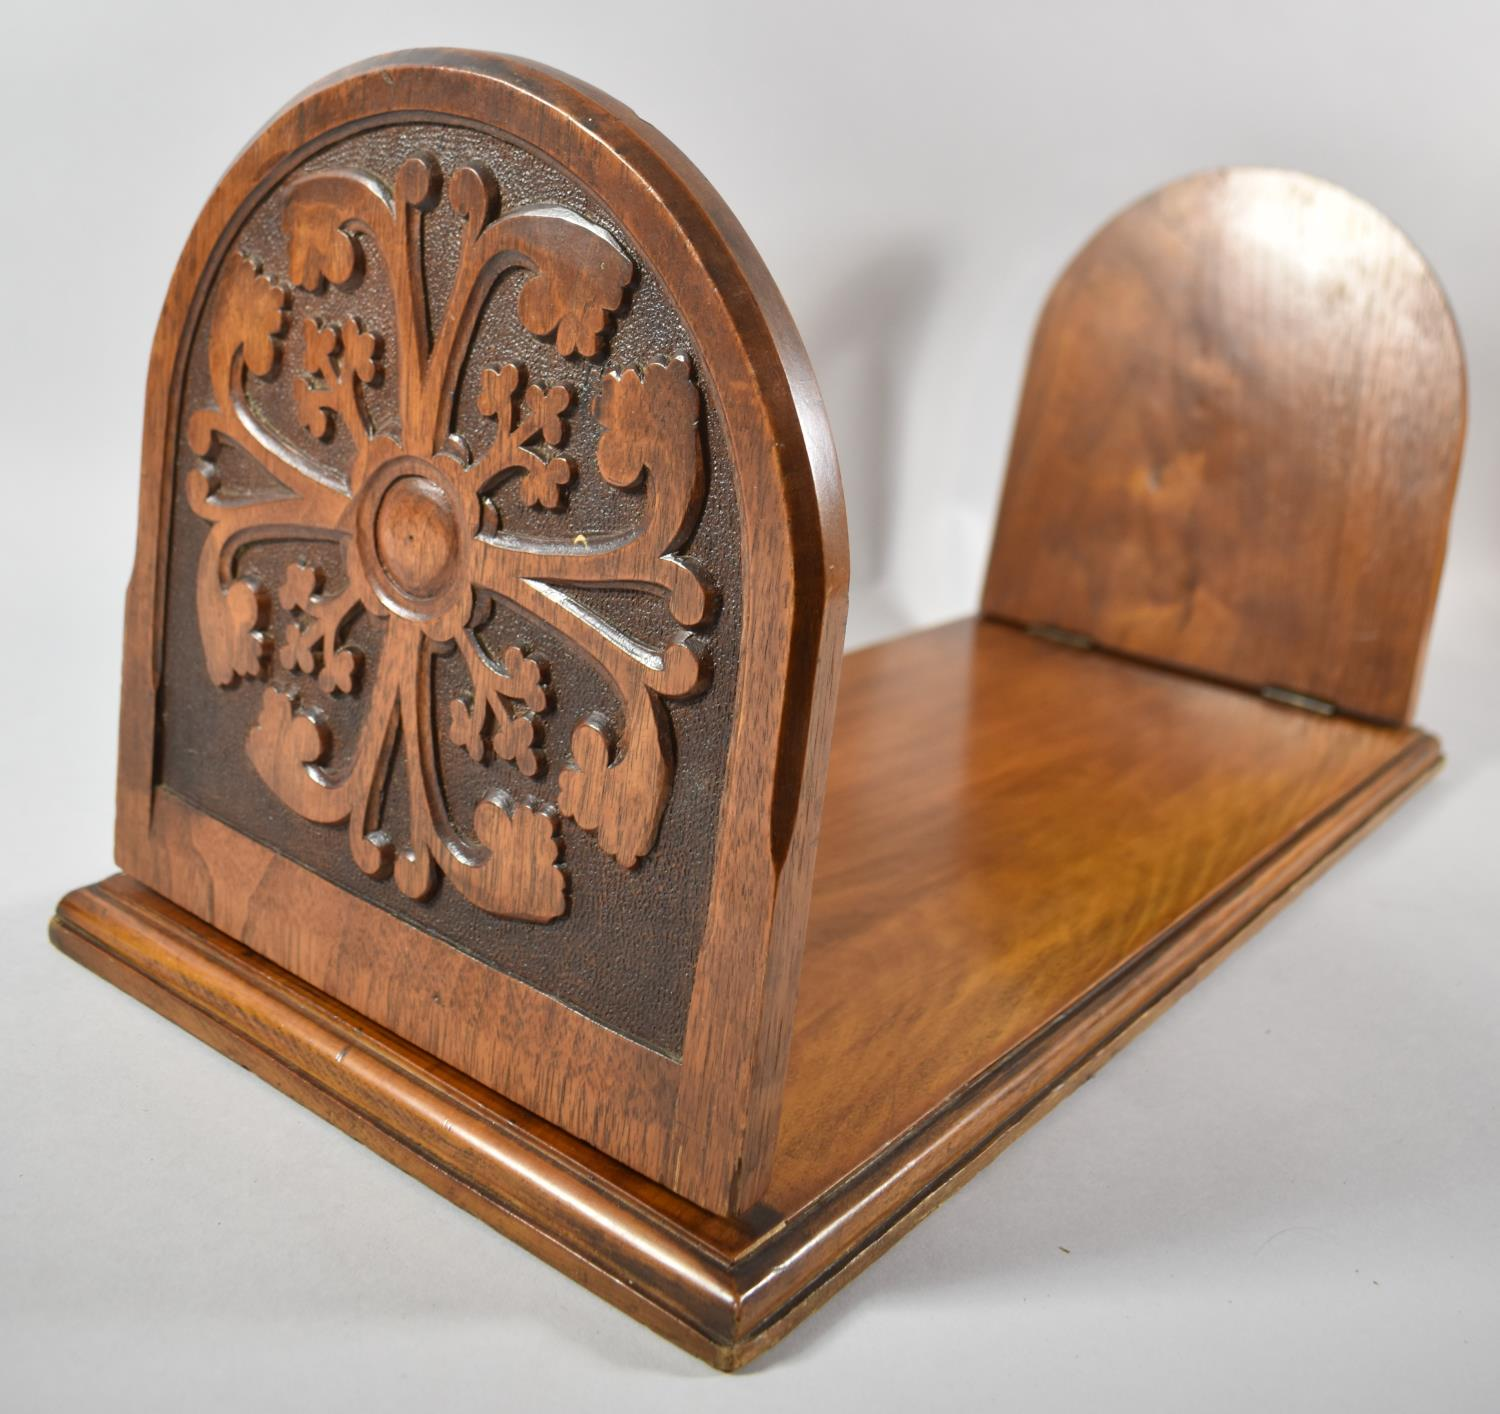 A Late Victorian Carved Book Rest with Hinged Arched End Panels, 51cm wide - Image 2 of 2